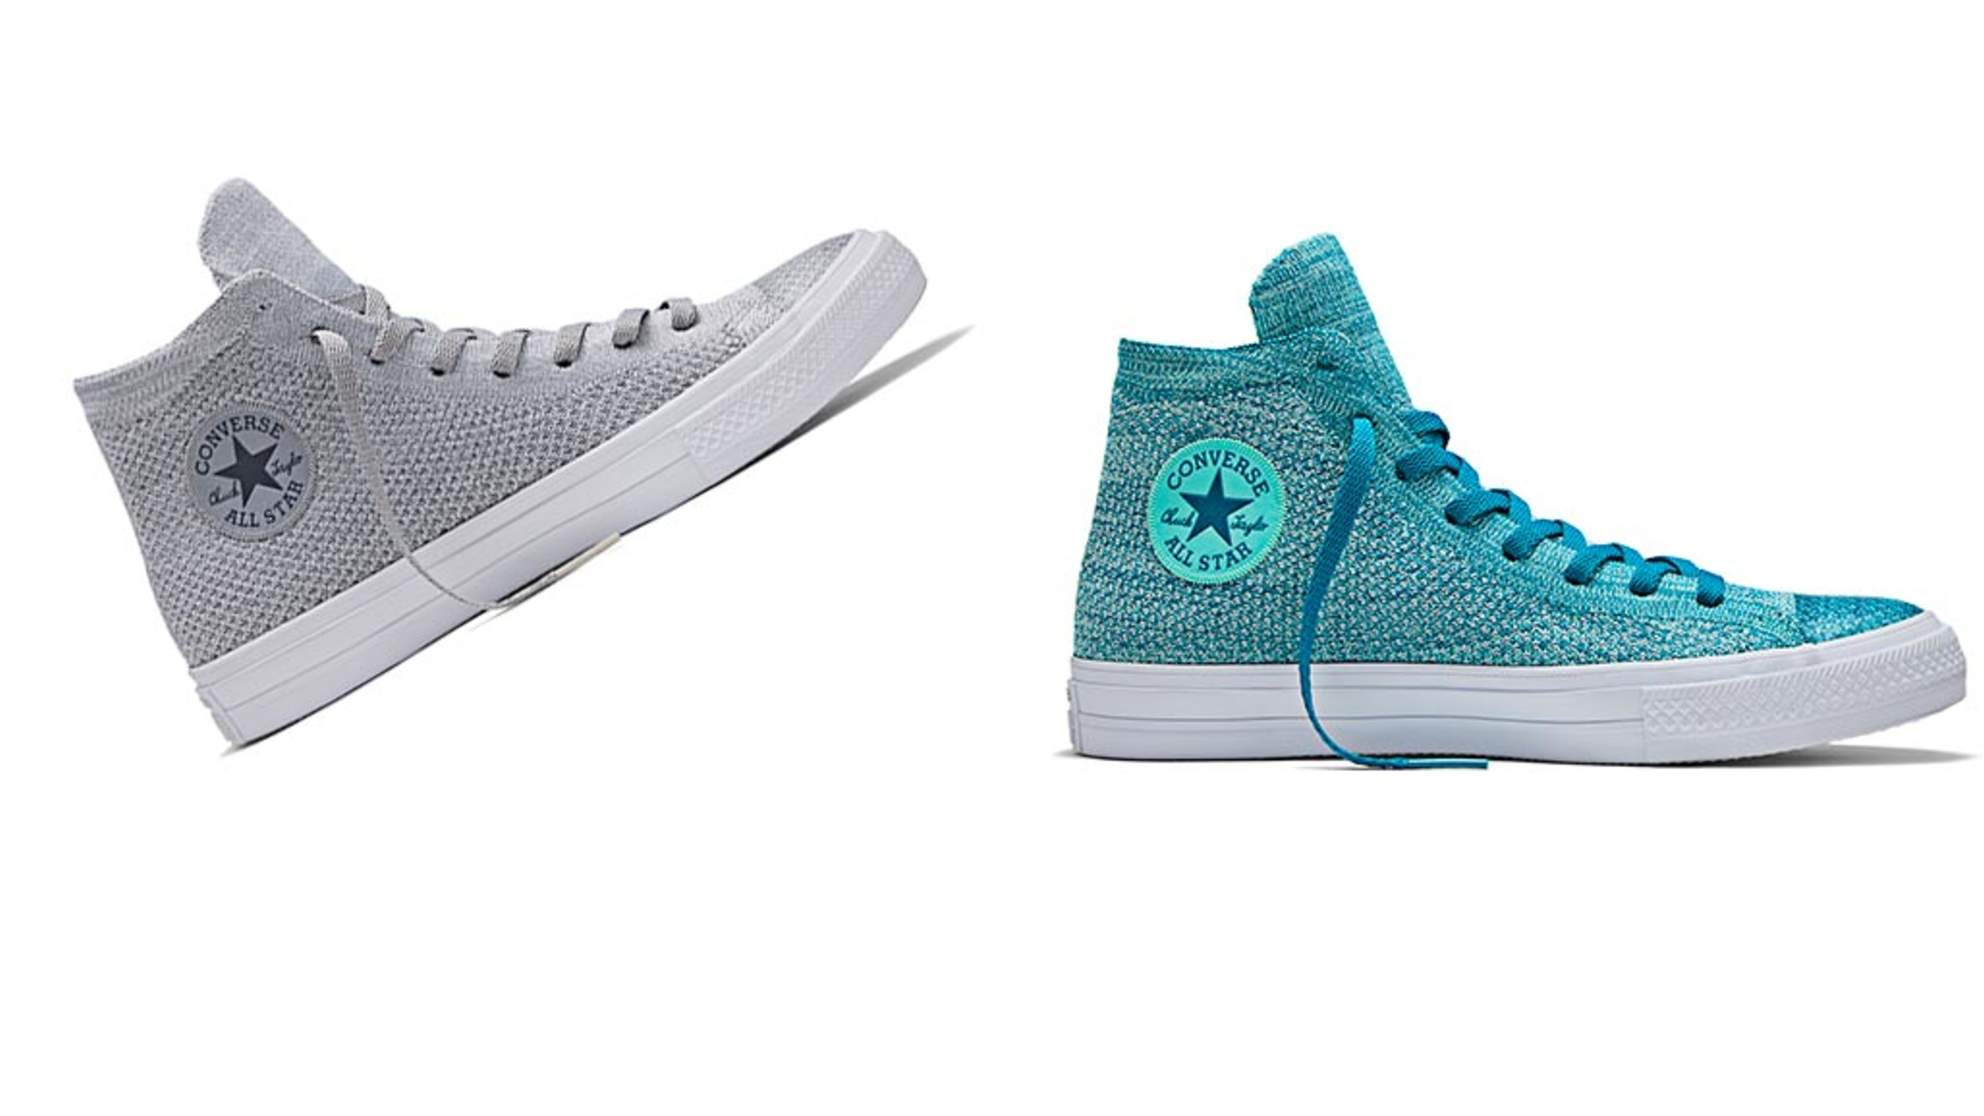 Converse Chuck Taylor All Star x Nike Flyknit Launch Our New Favorite Travel Shoe